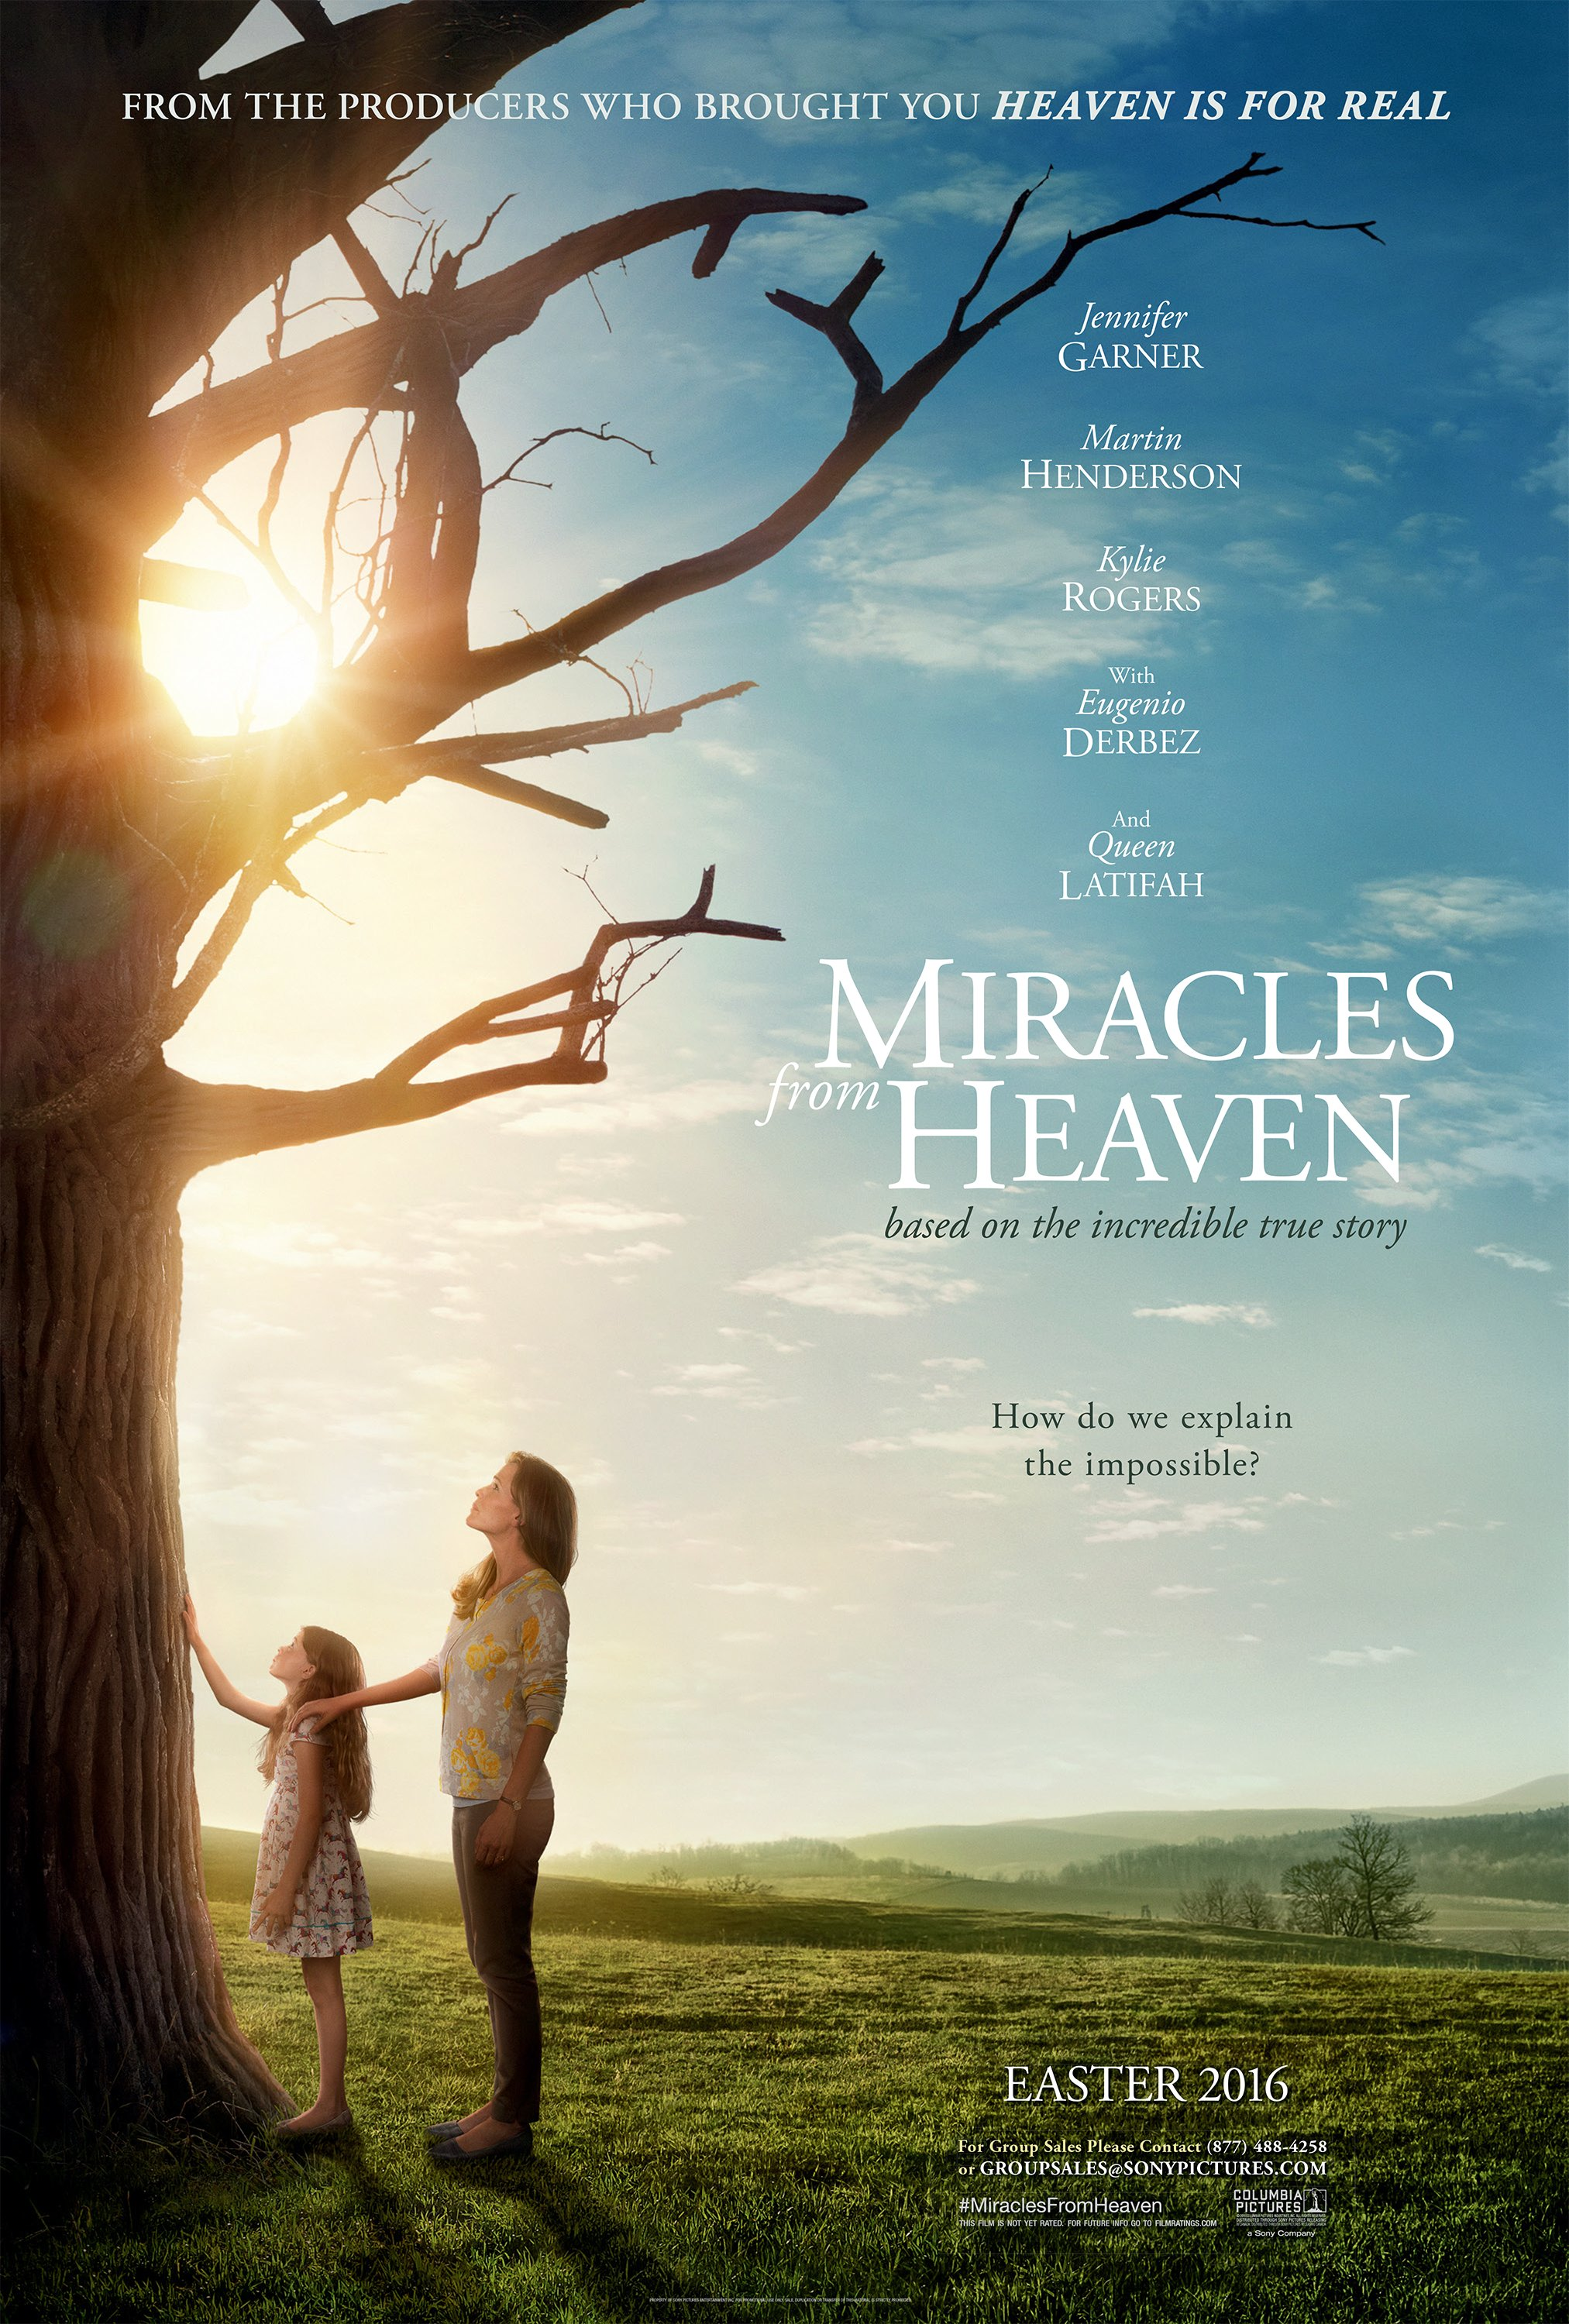 Miracles from Heaven (2016) - Directed By: Patricia RiggenStarrring: Jennifer Garner, Kylie Rogers, Martin HendersonRated: PG for Thematic Material, Including Accident and Medical ImagesRunning Time: 1 H 49 MTMM: 3 out of 5 StarsStrengths: Acting, Portrayal of Christian Life, Non-Preachy Scenes, Heightening of StakesWeaknesses: Marketing, Manufactured Happiness, Preachy Scenes